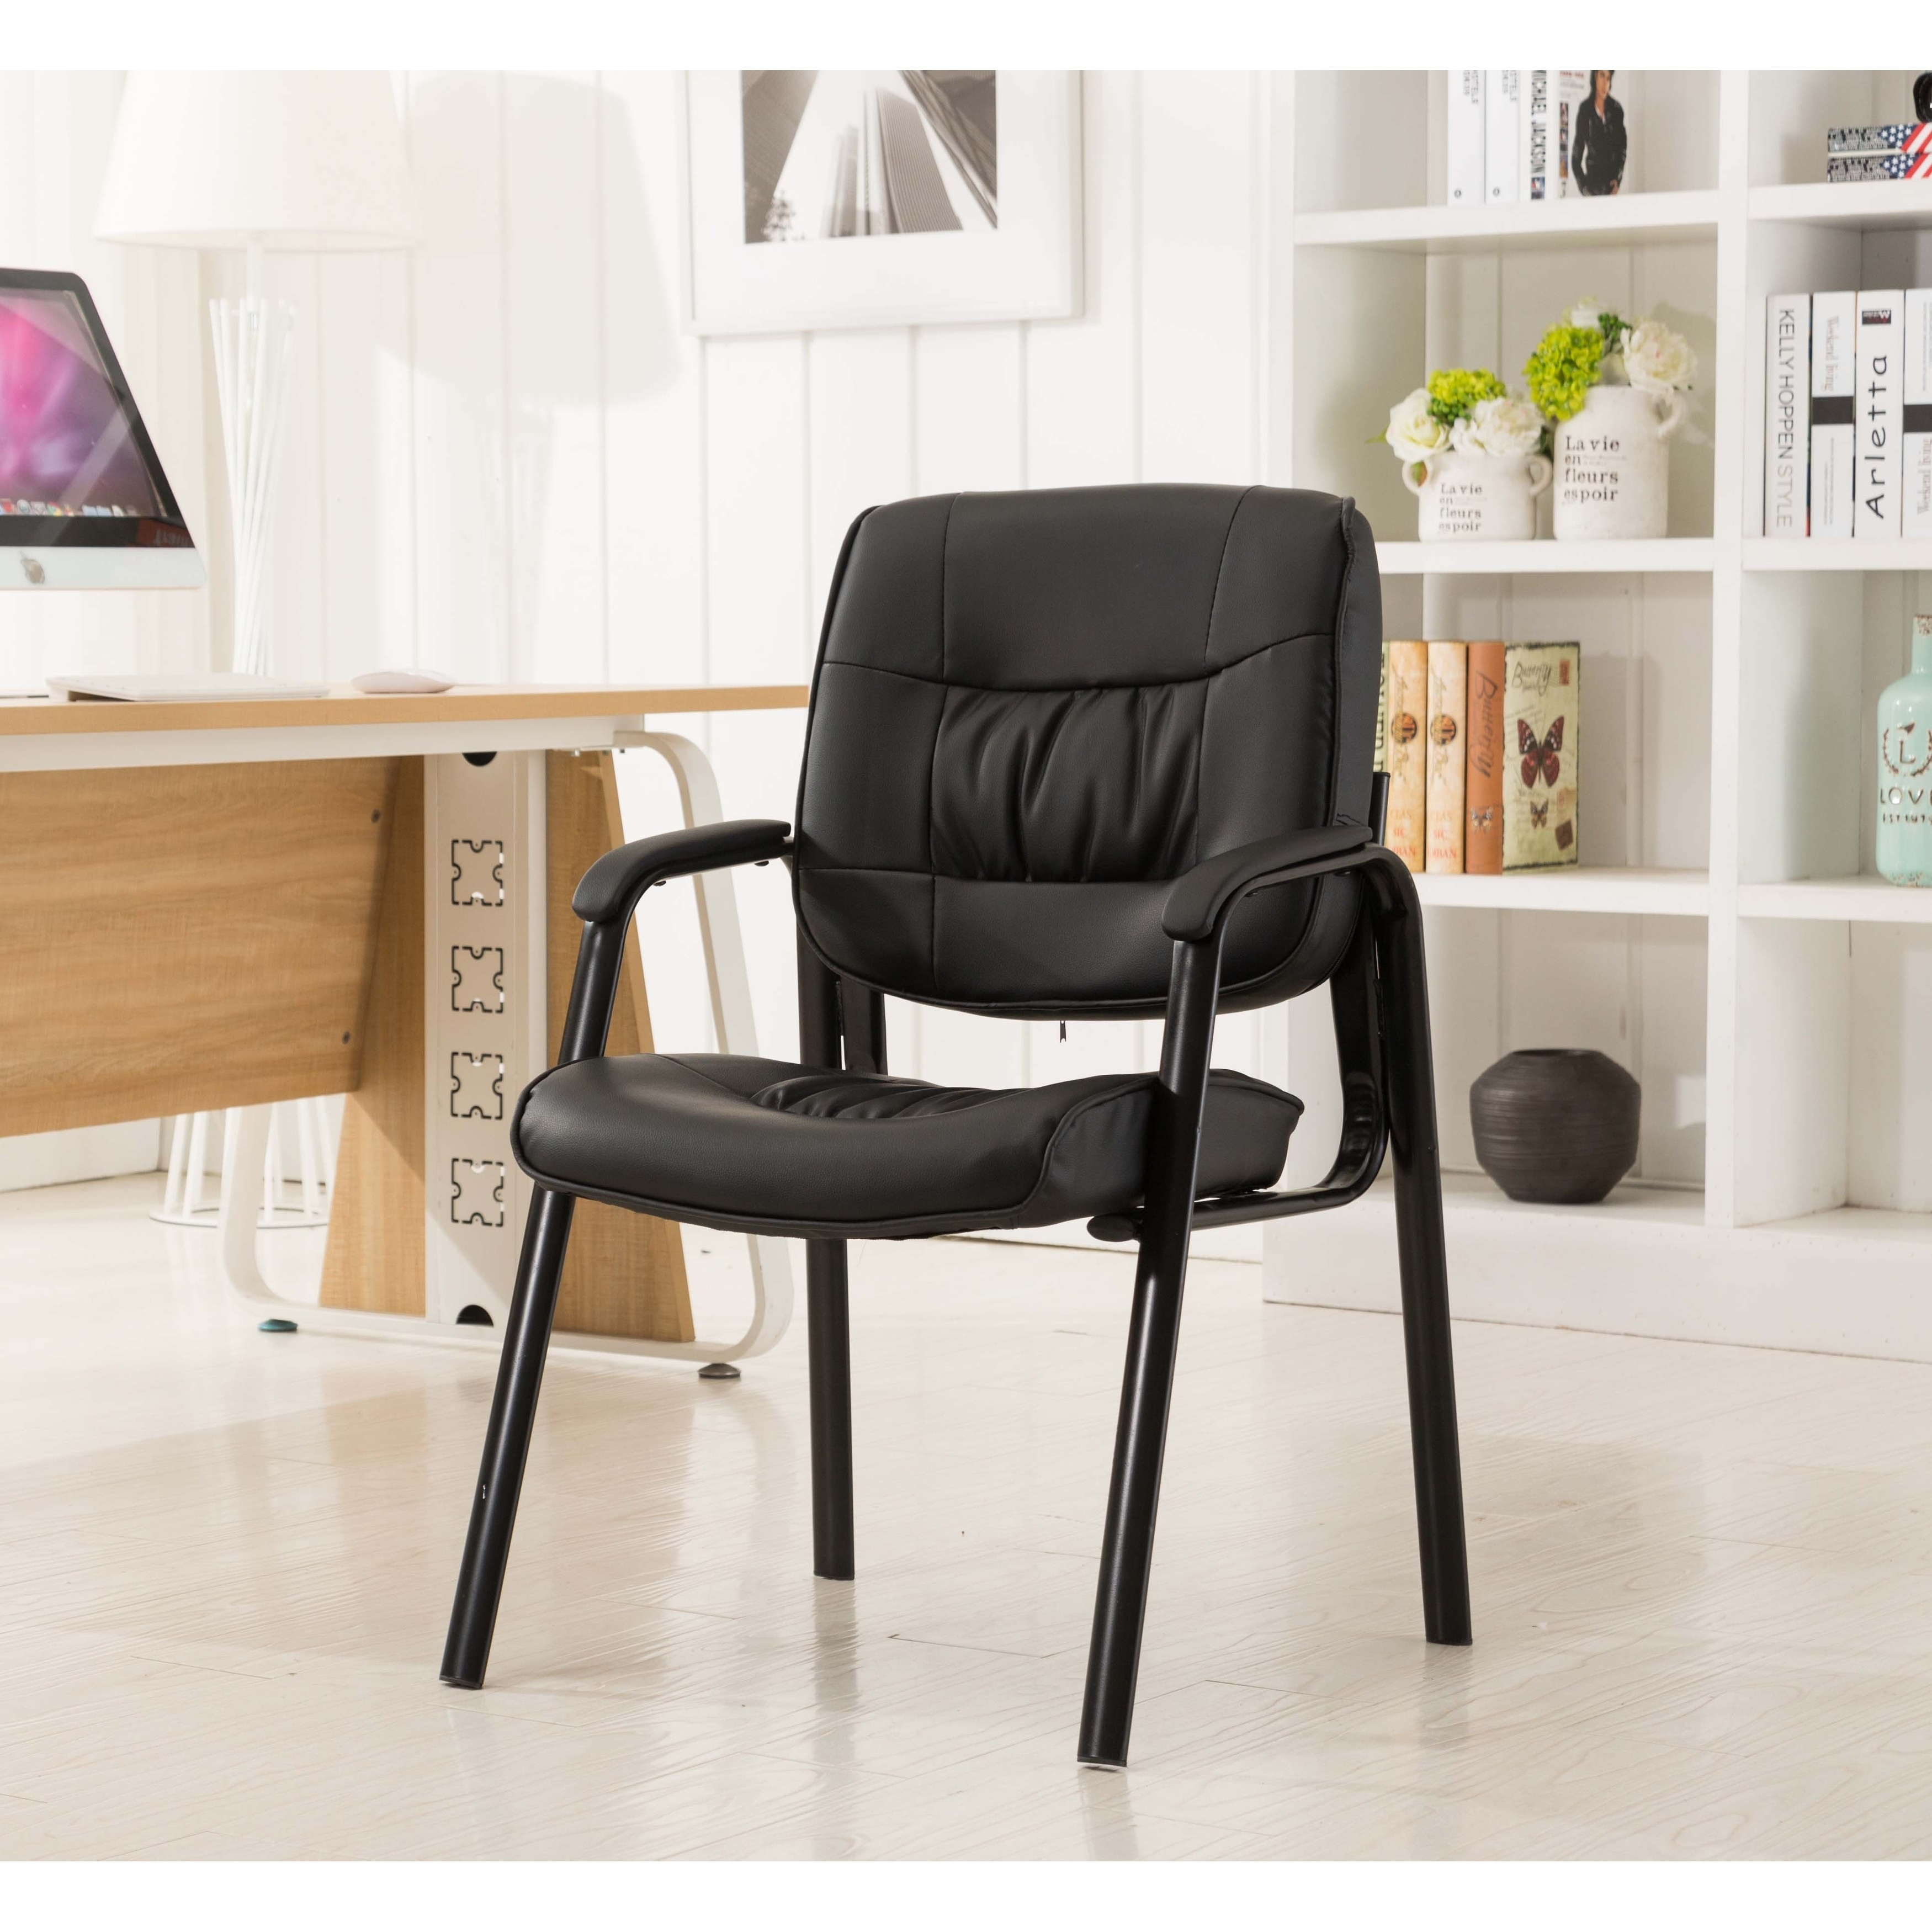 Durable Conference Chair Office Chair Waiting Room Guest Reception Armrest Black